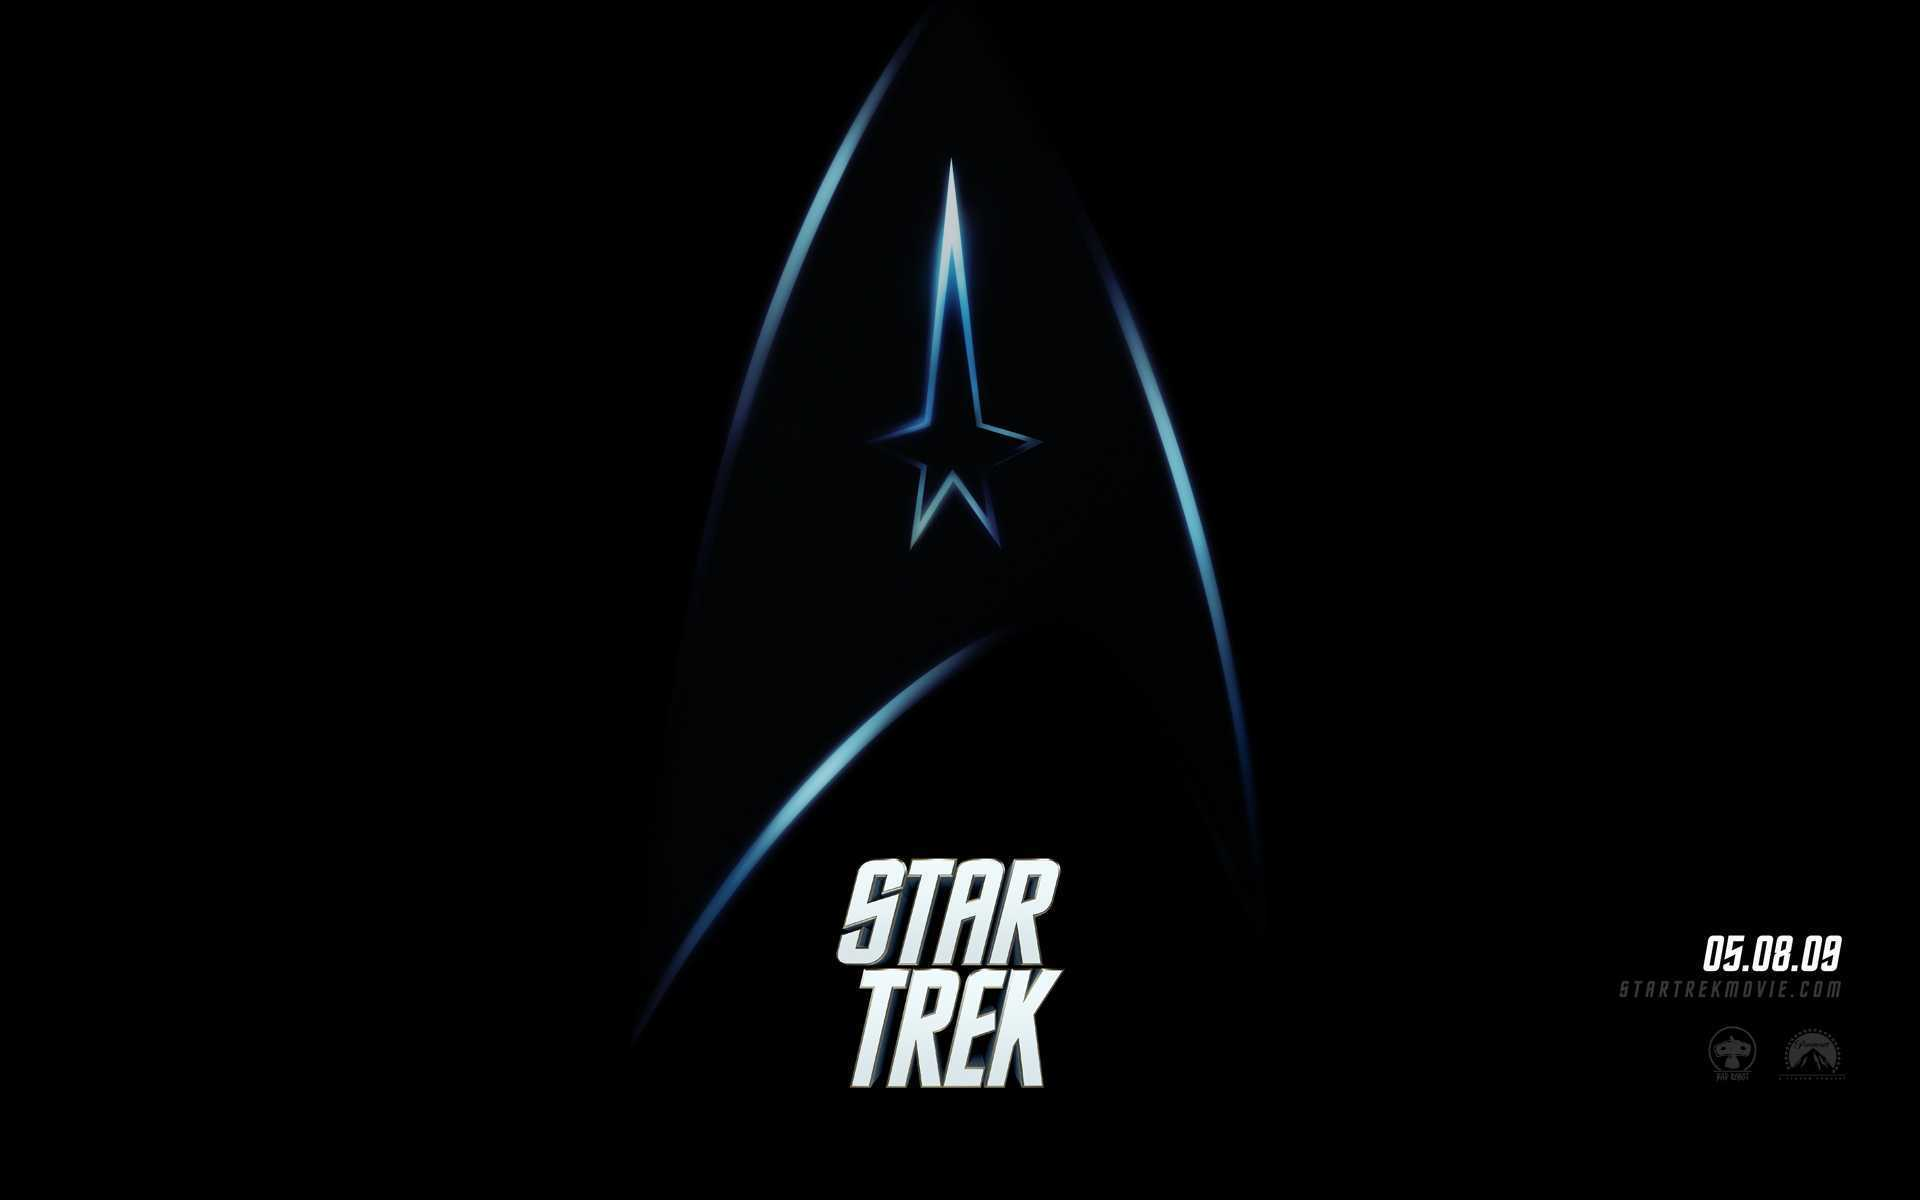 Star Trek   Star Trek 2009 Wallpaper 3677023 1920x1200